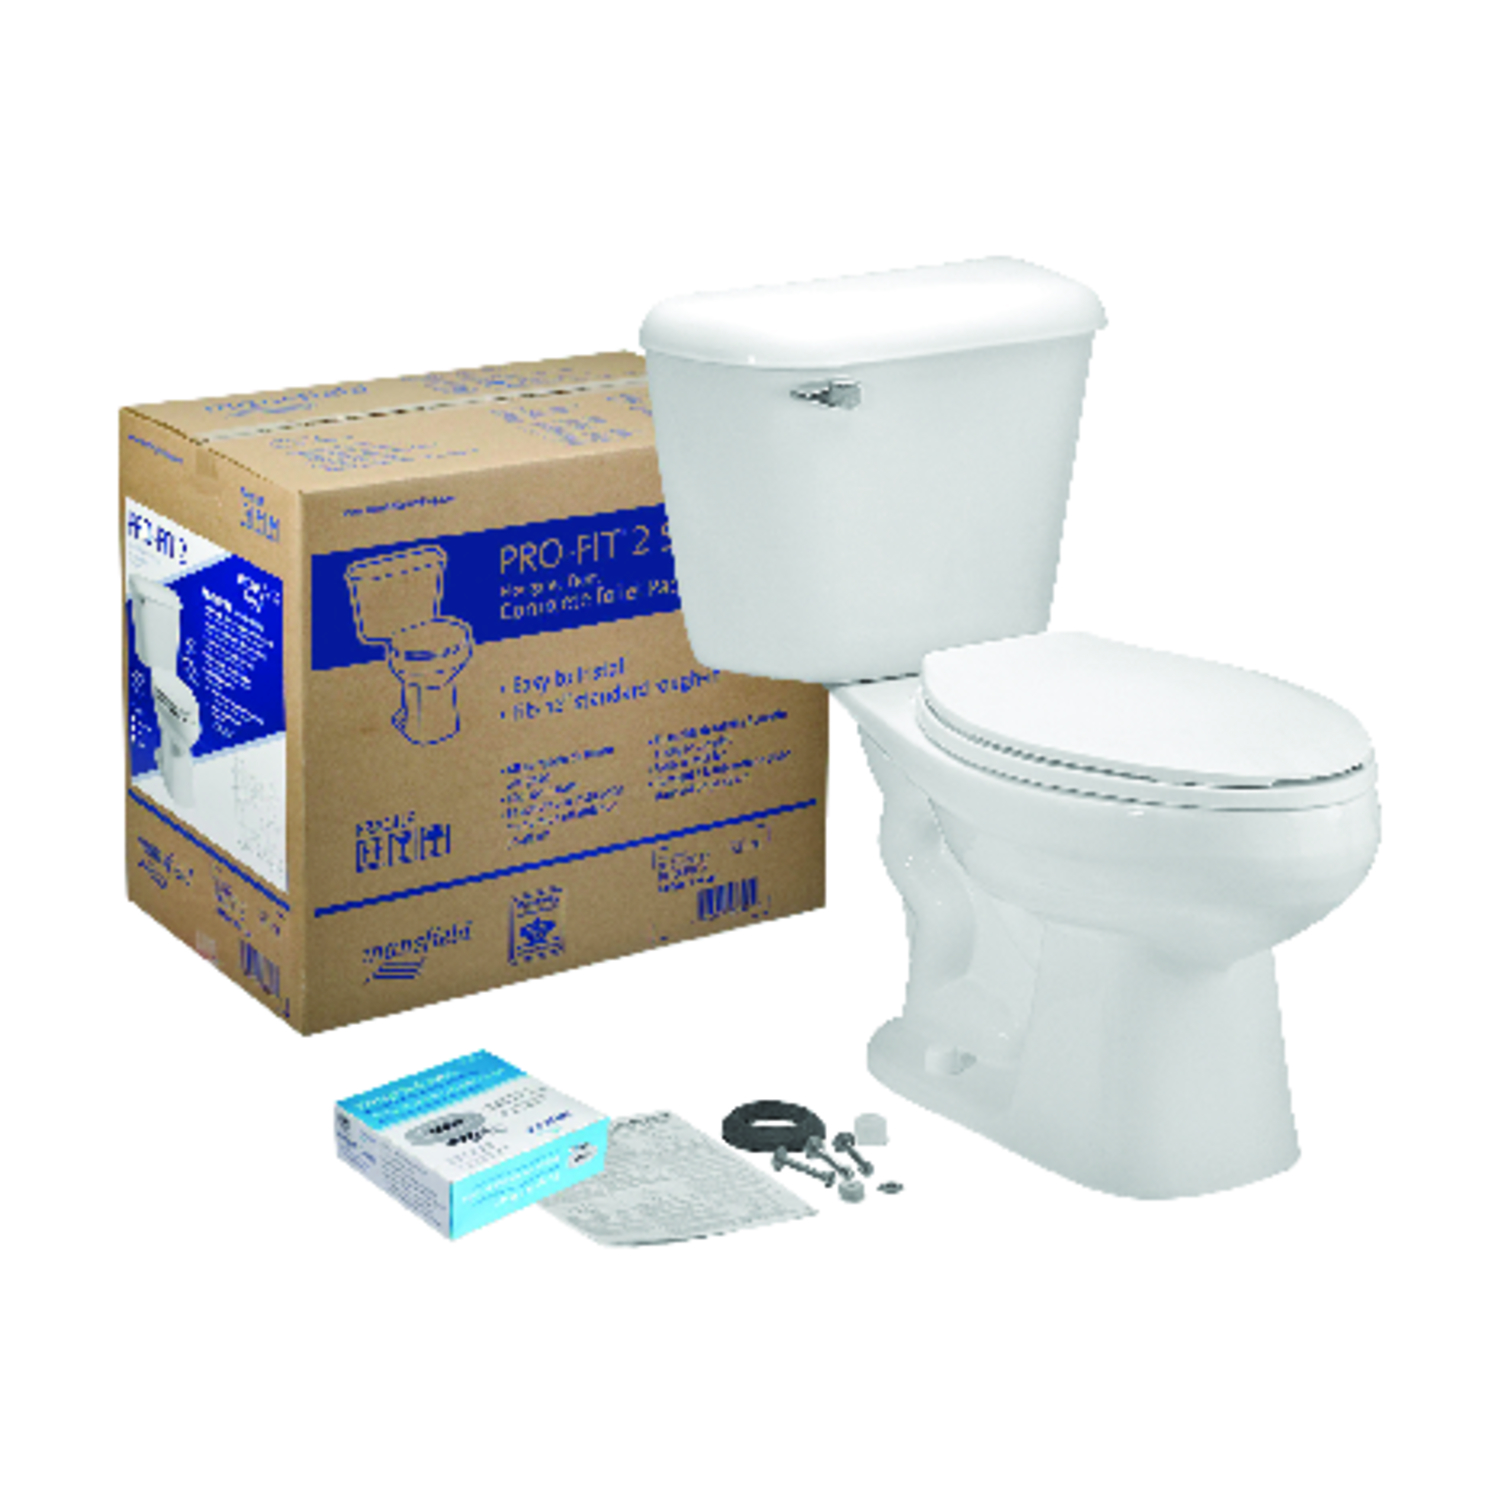 Mansfield  Alto Pro-Fit 2  Elongated  Complete Toilet  1.6 gal. White